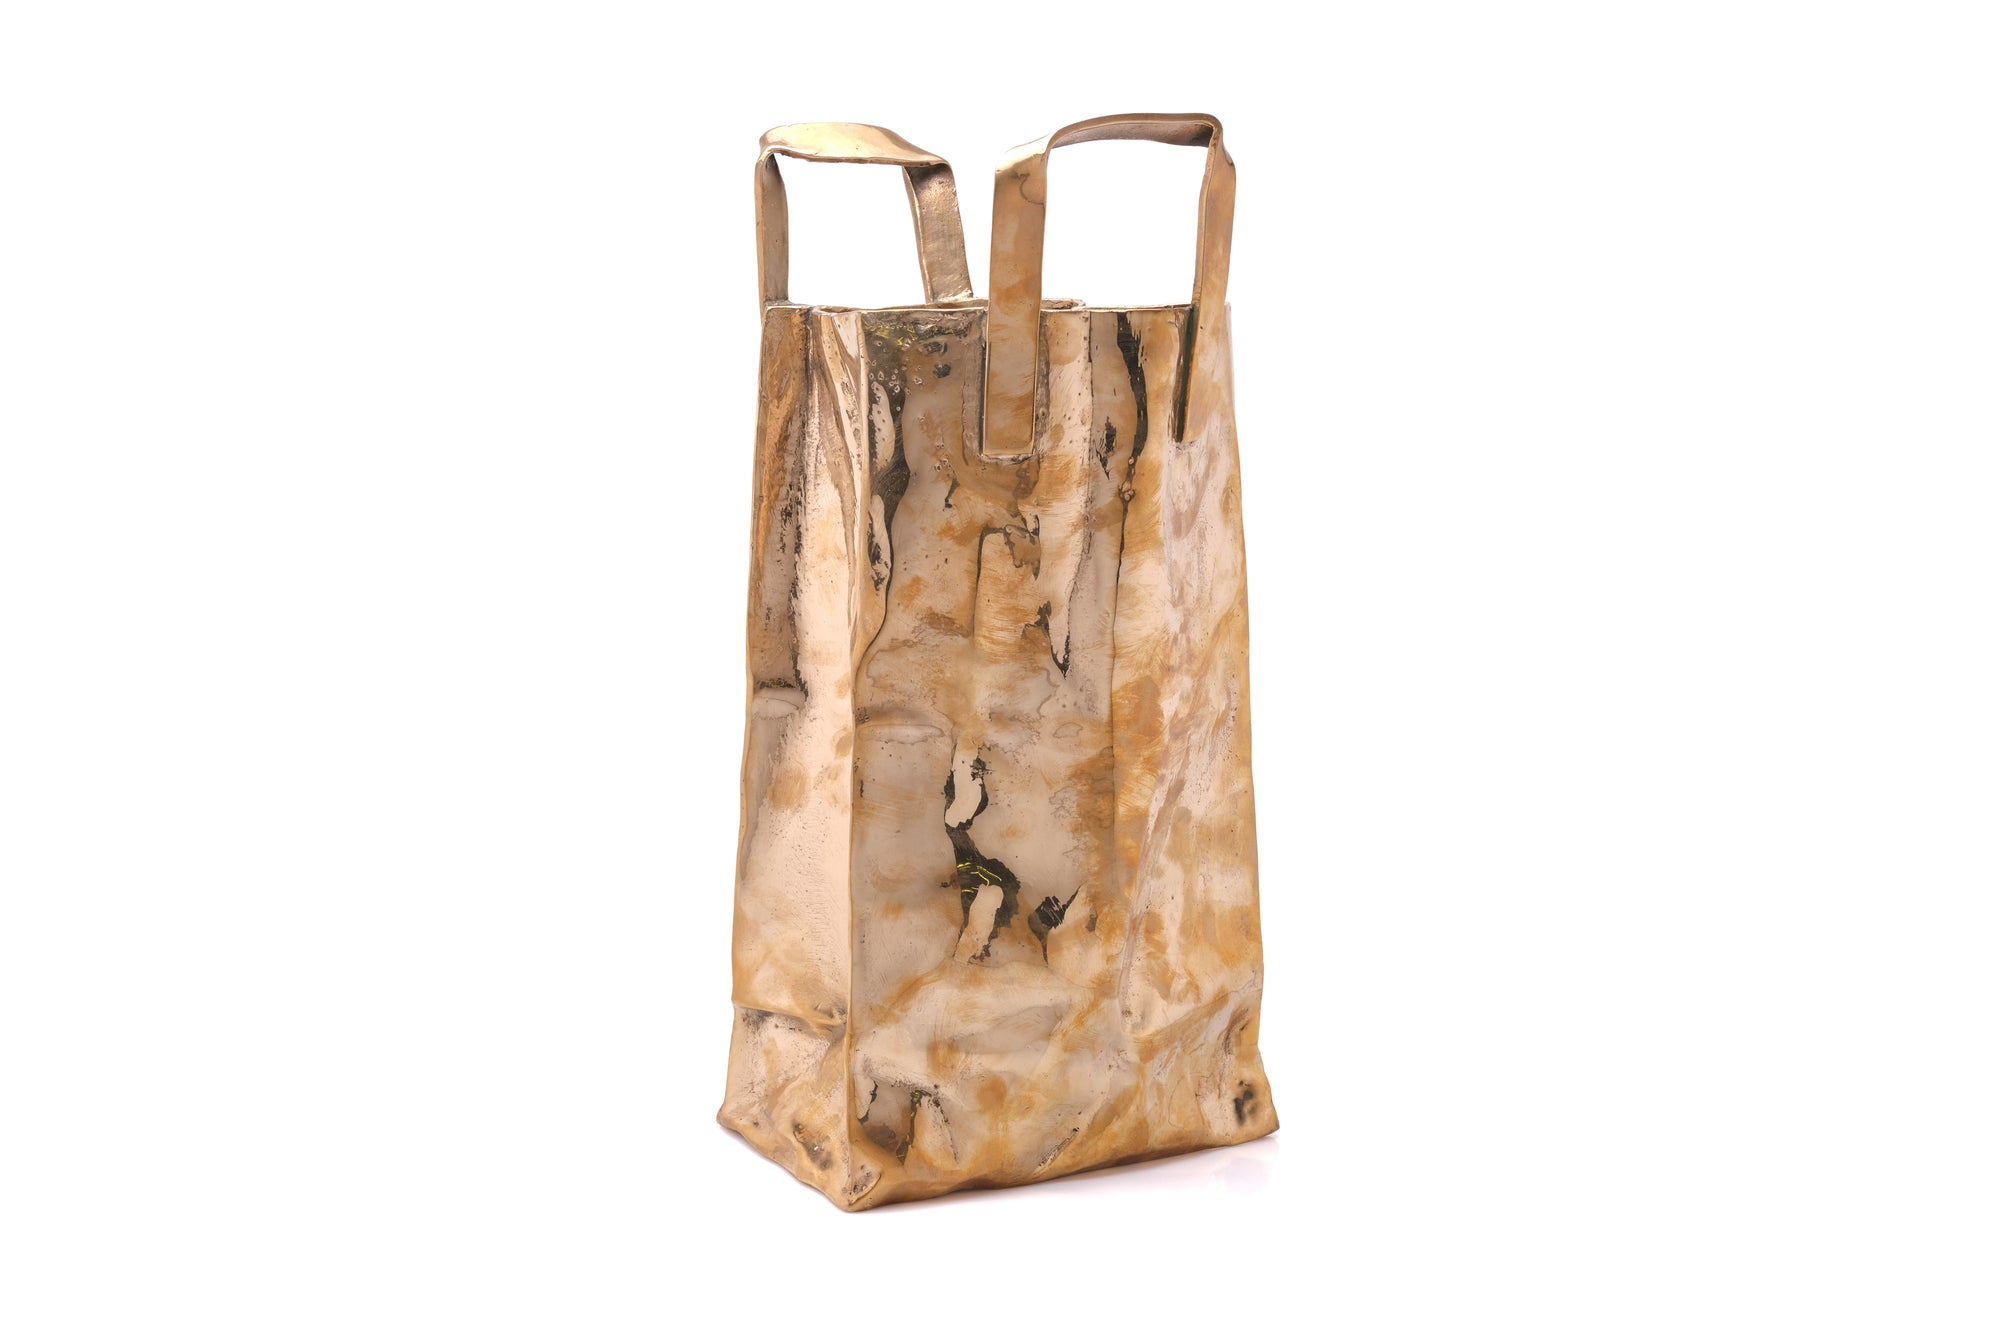 Bronze Sculpture of a Shopping Bag